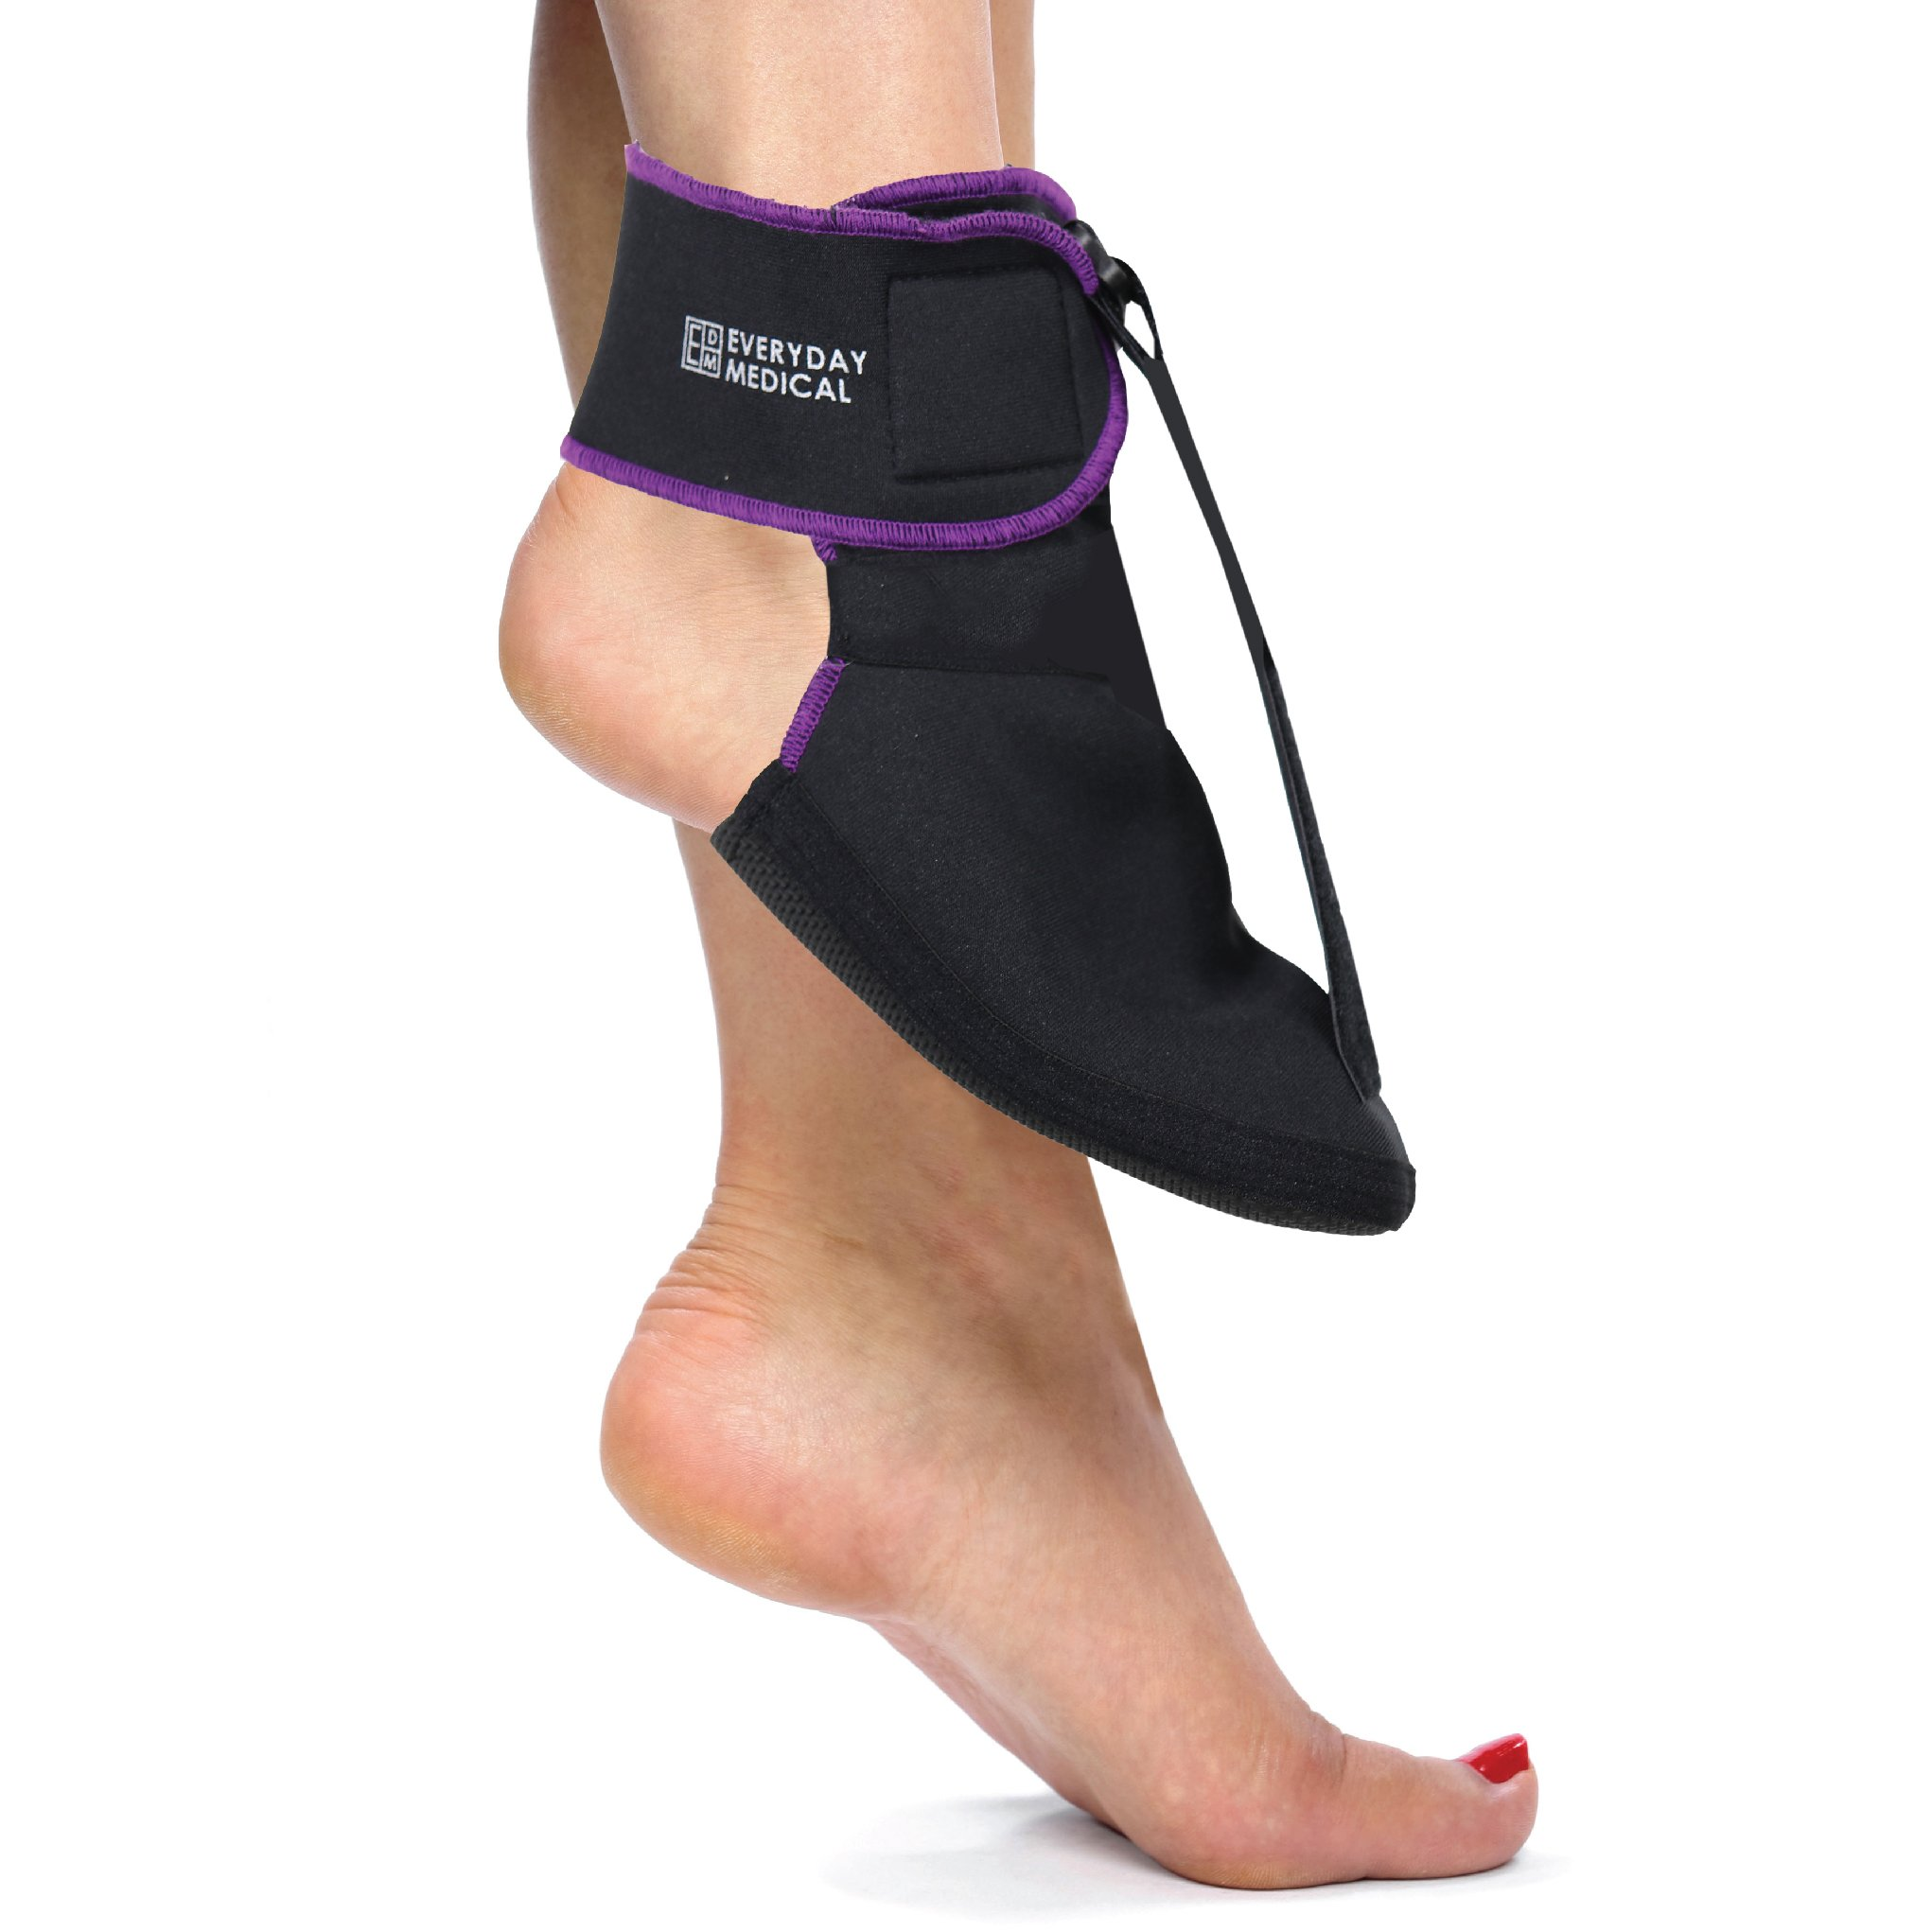 Everyday Medical Plantar Fasciitis Soft-Stretching Night Splint Sock l Plantar Fascia Night Splint l Relief from Achilles Tendonitis, Arch Foot and Heel Pain for Men & Women (Medium) by Everyday Medical